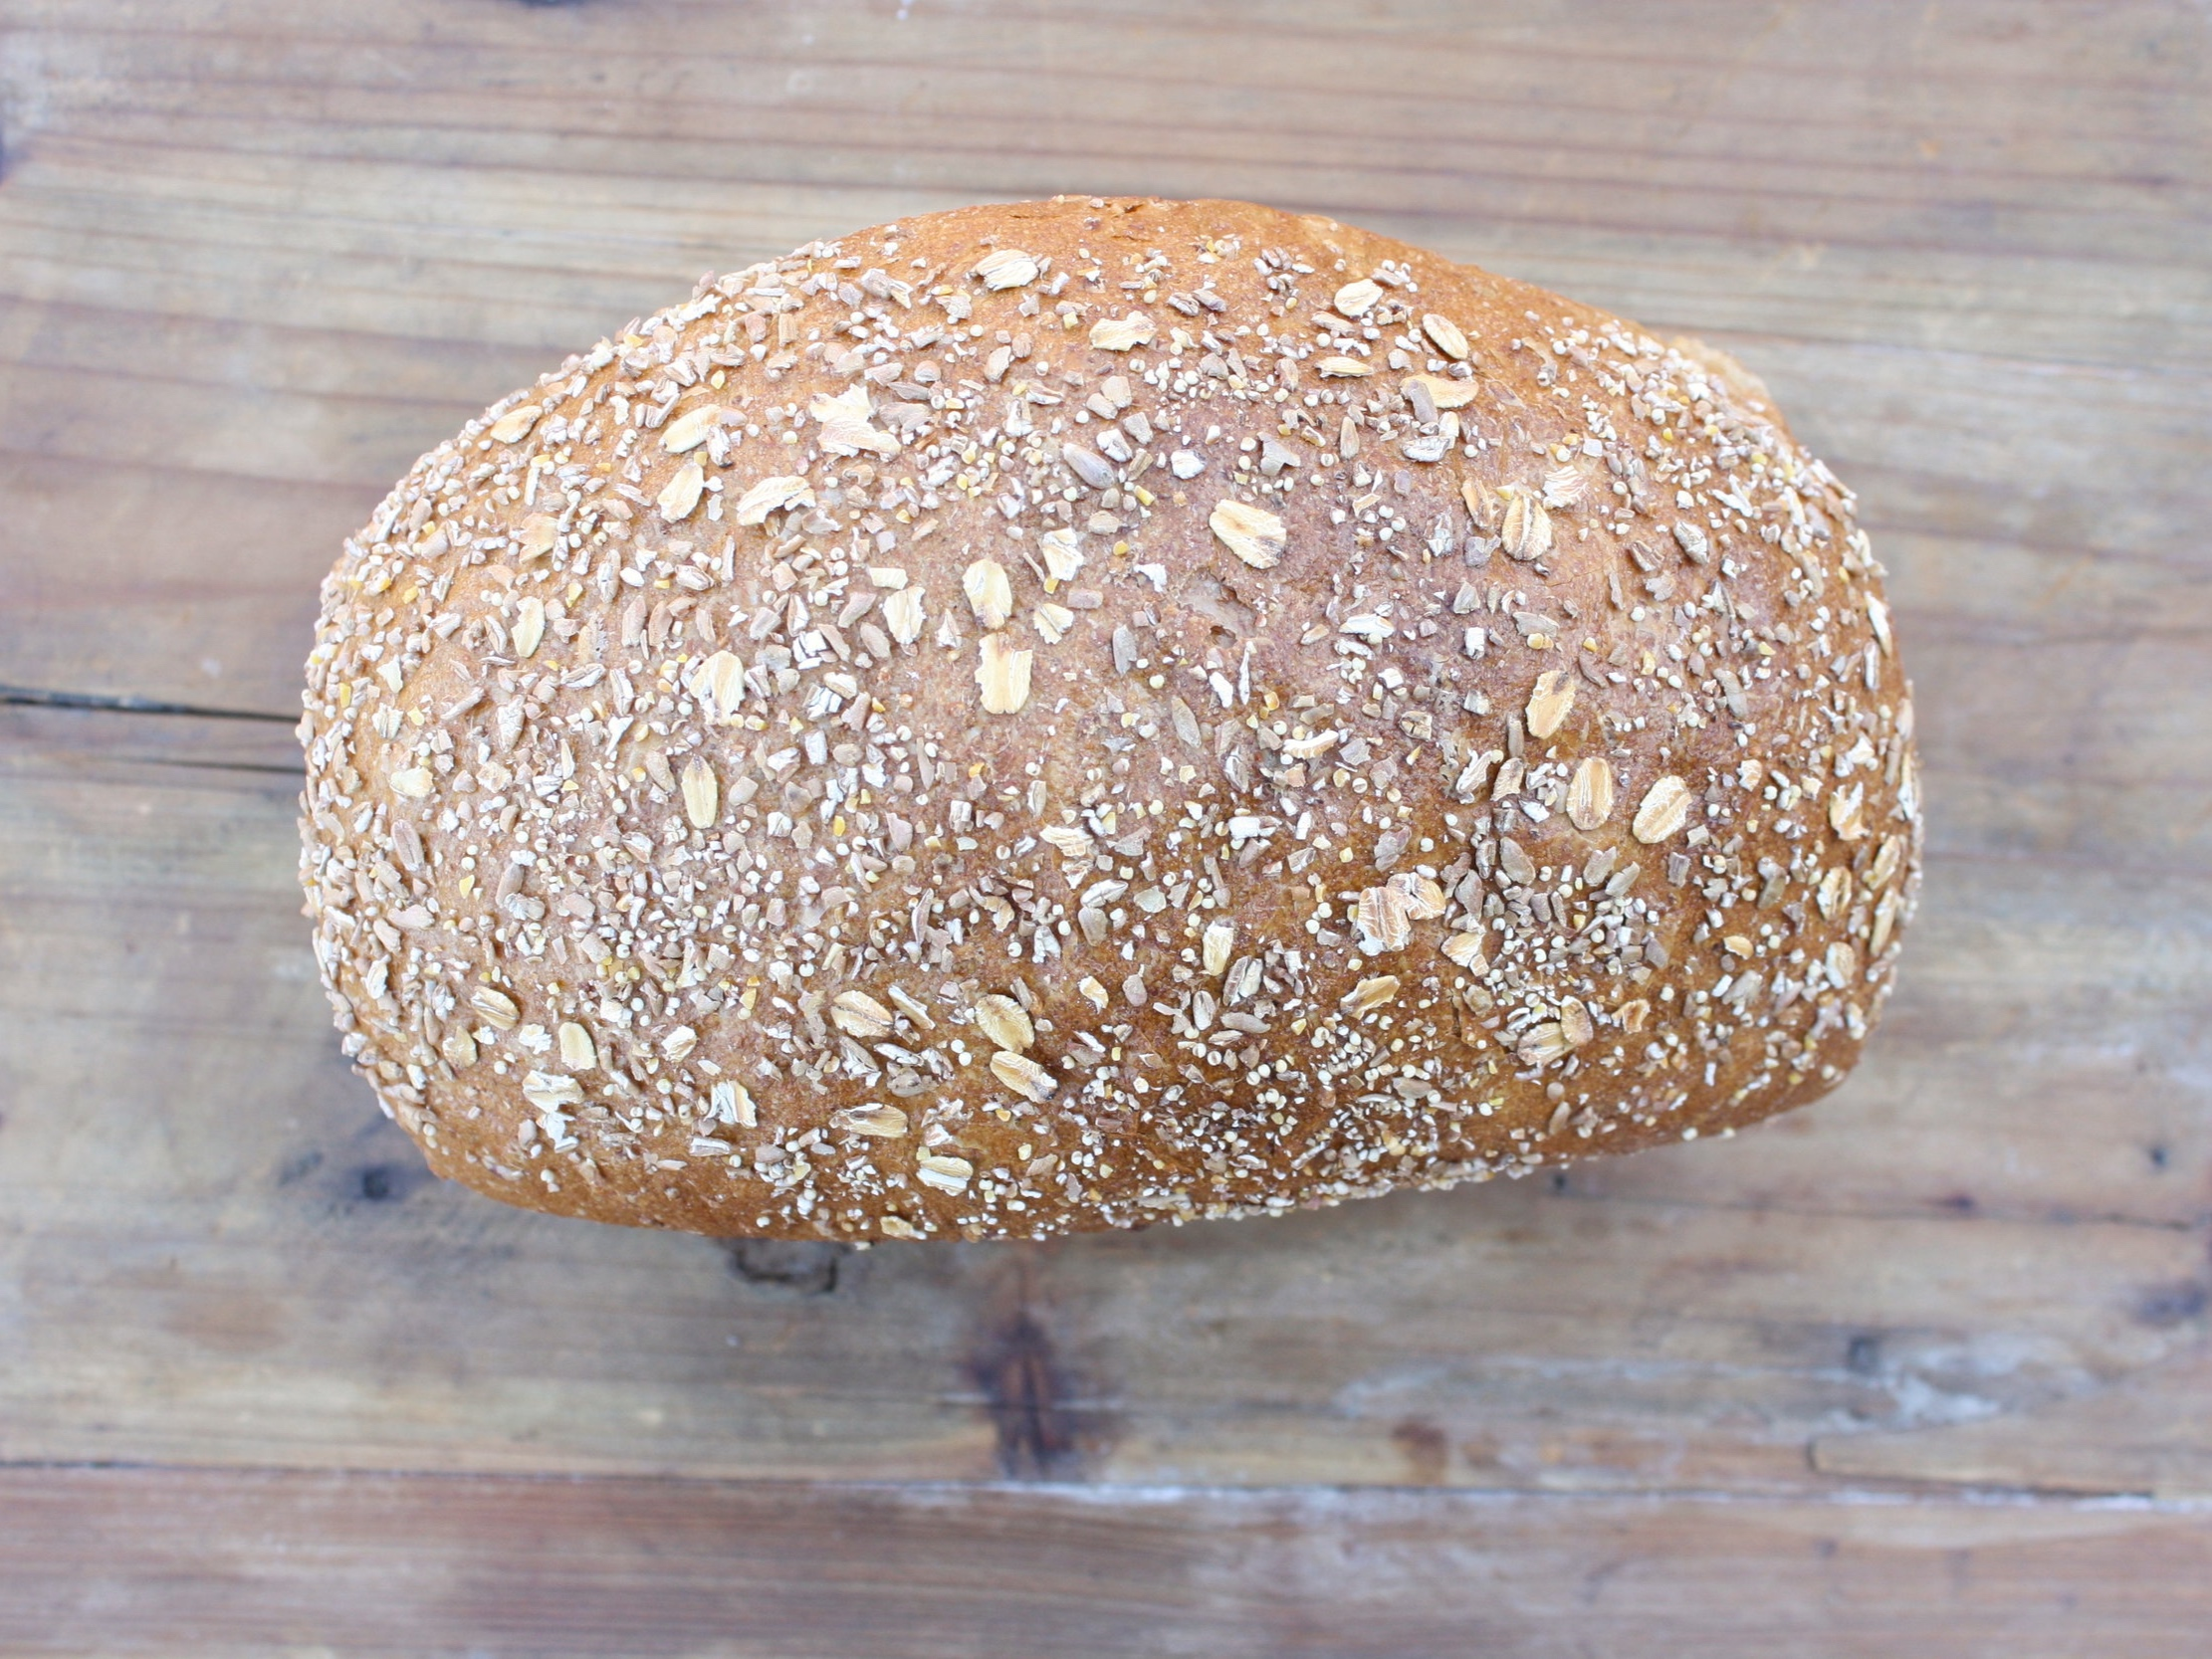 multigrain - a soft sandwich bread made with seven grains.mon., tues., wed., thurs., & fri.ingredients: bread flour, whole wheat flour, cracked wheat, oat flakes, rye, hulled millet, corn grits, spelt, flax seeds, molasses, water, yeast, salt. vegan$4.99